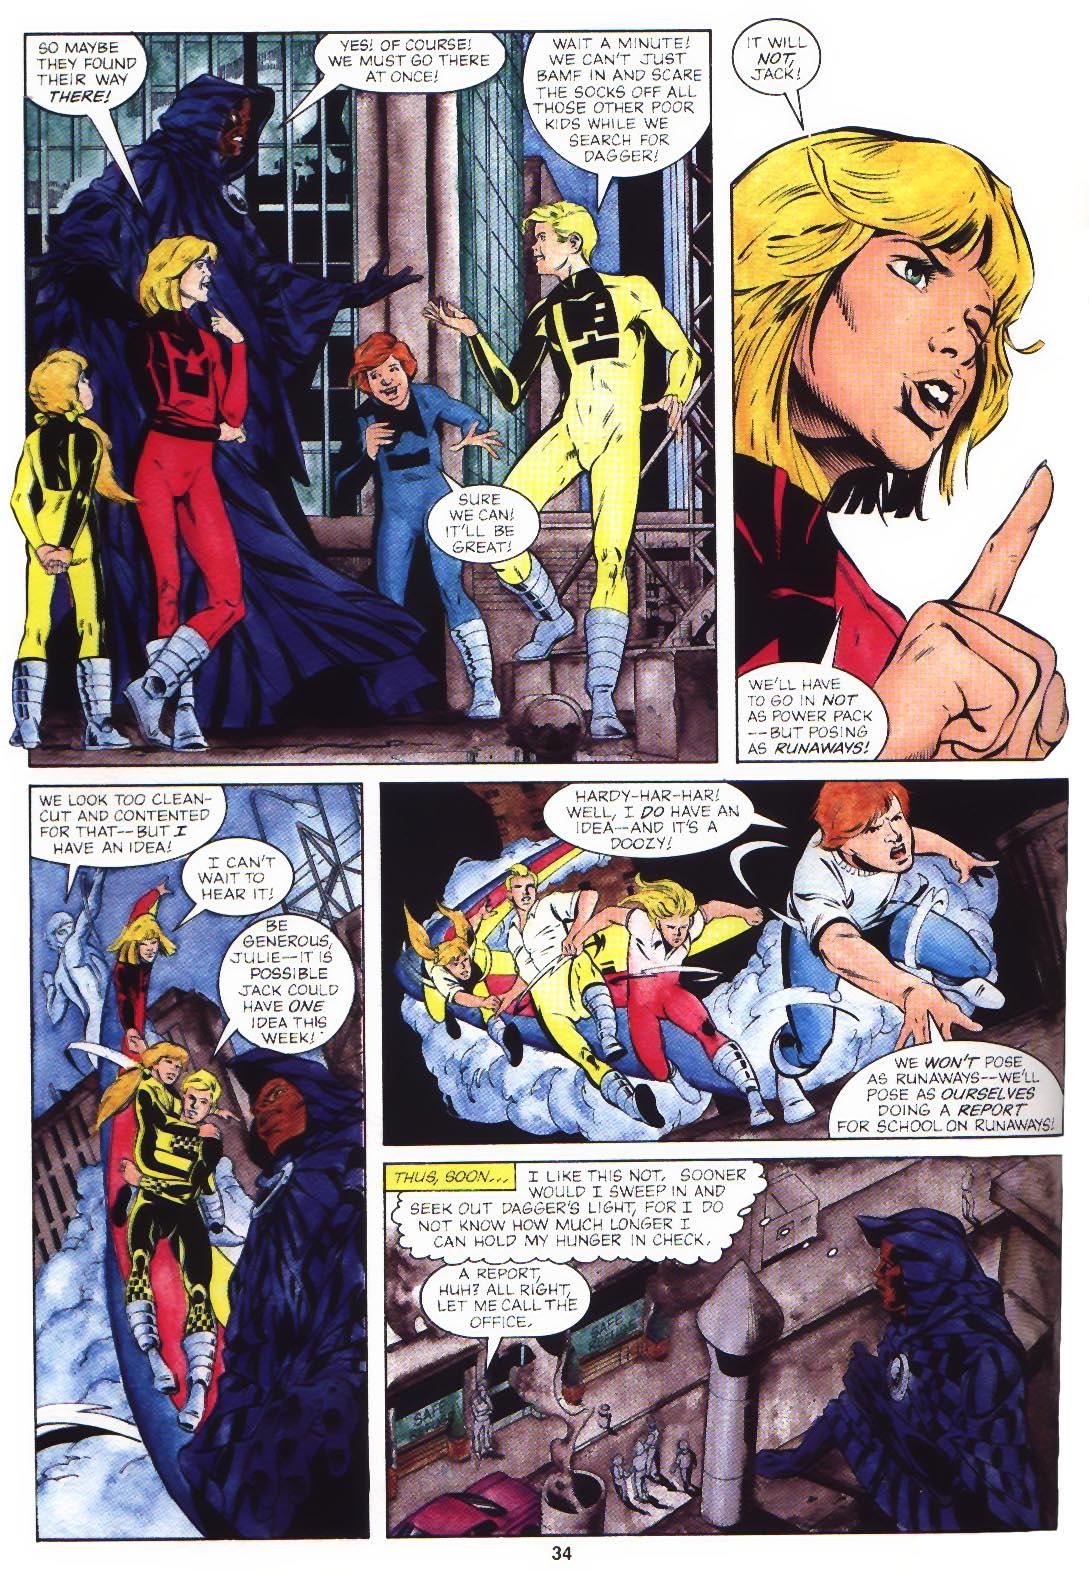 Power Pack and Cloak & Dagger Shelter From the Storm review